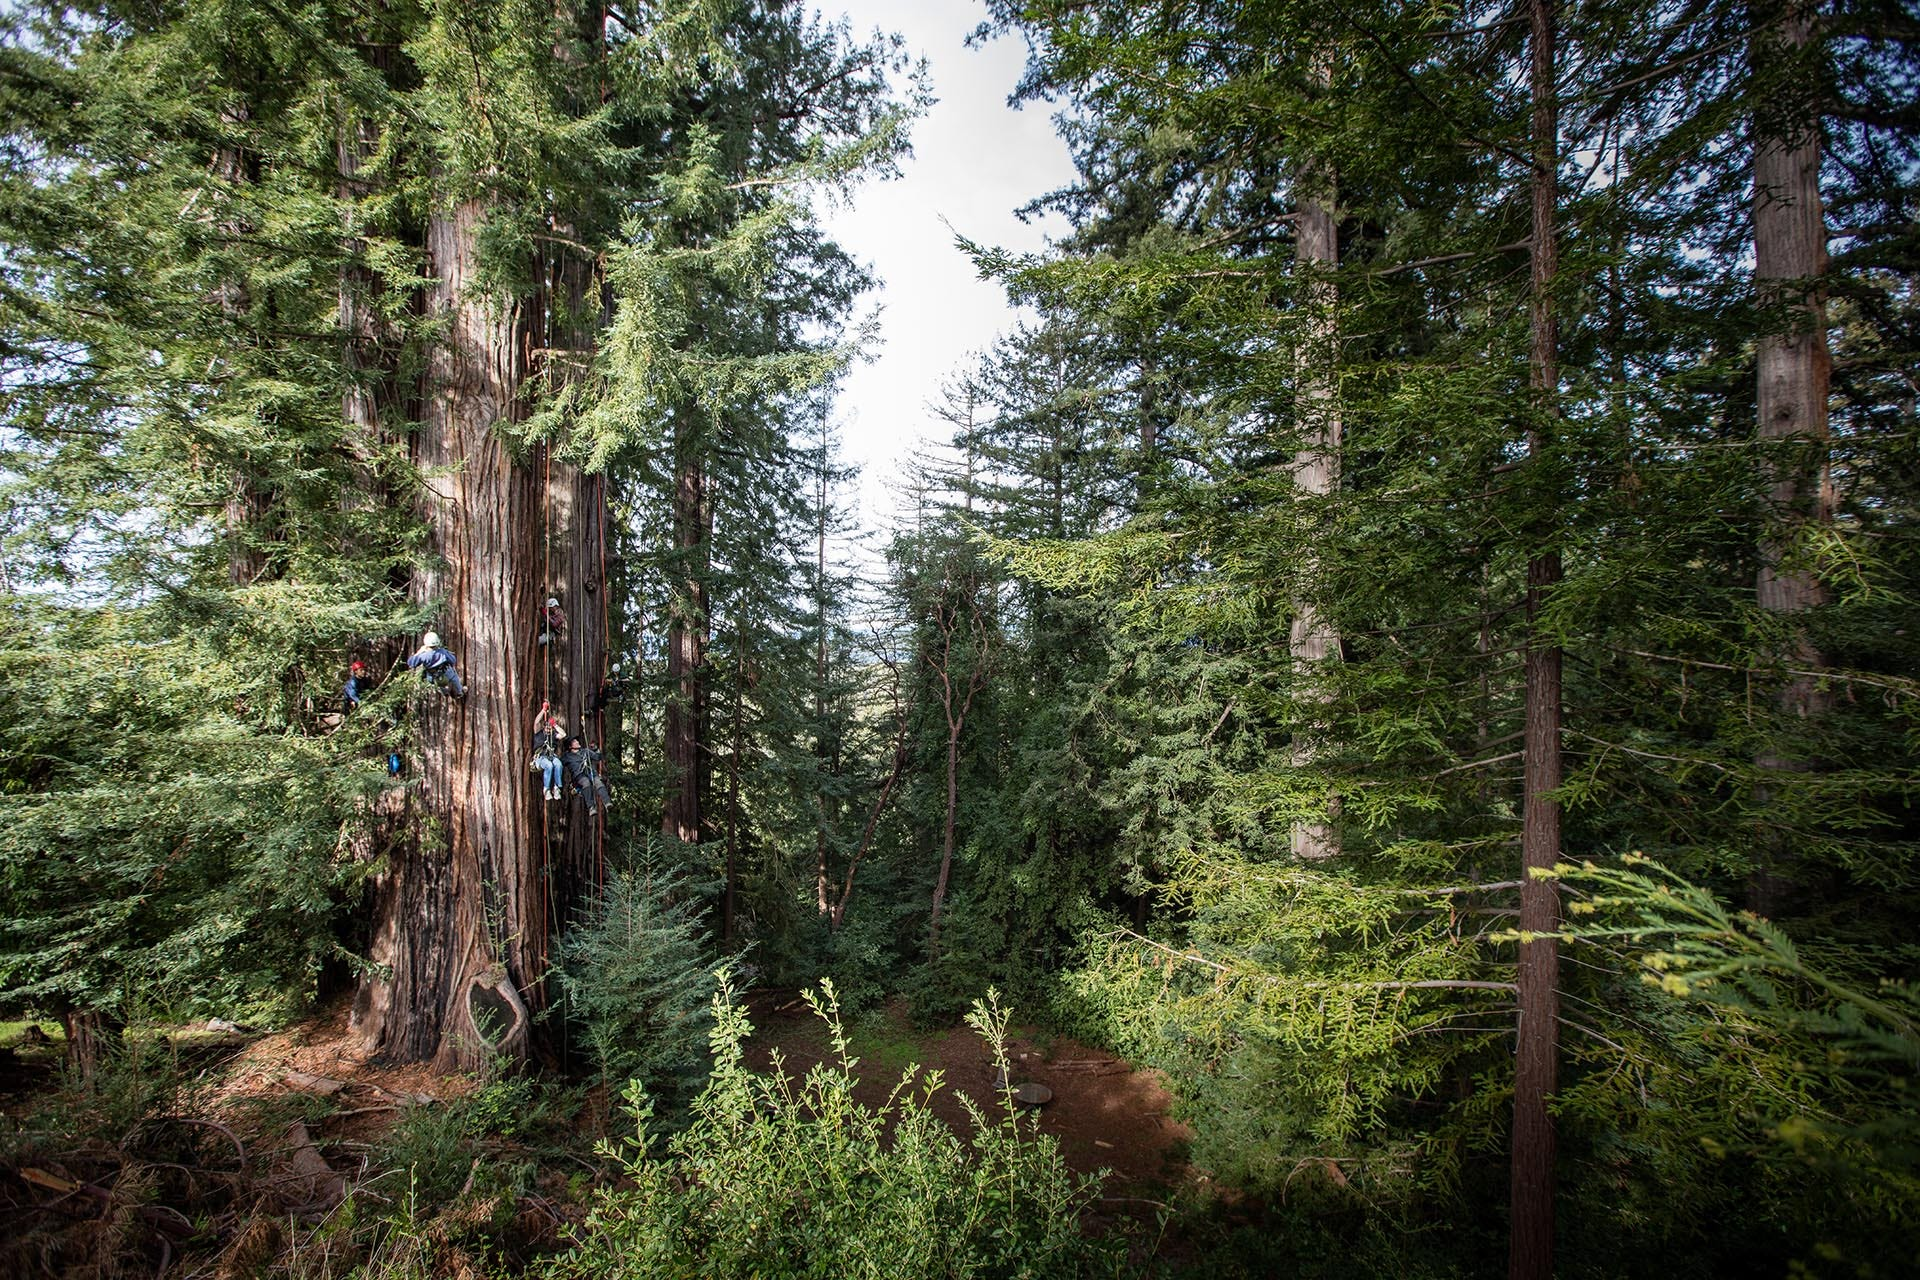 California redwood road trip: 5 memorable ways to experience the massive trees